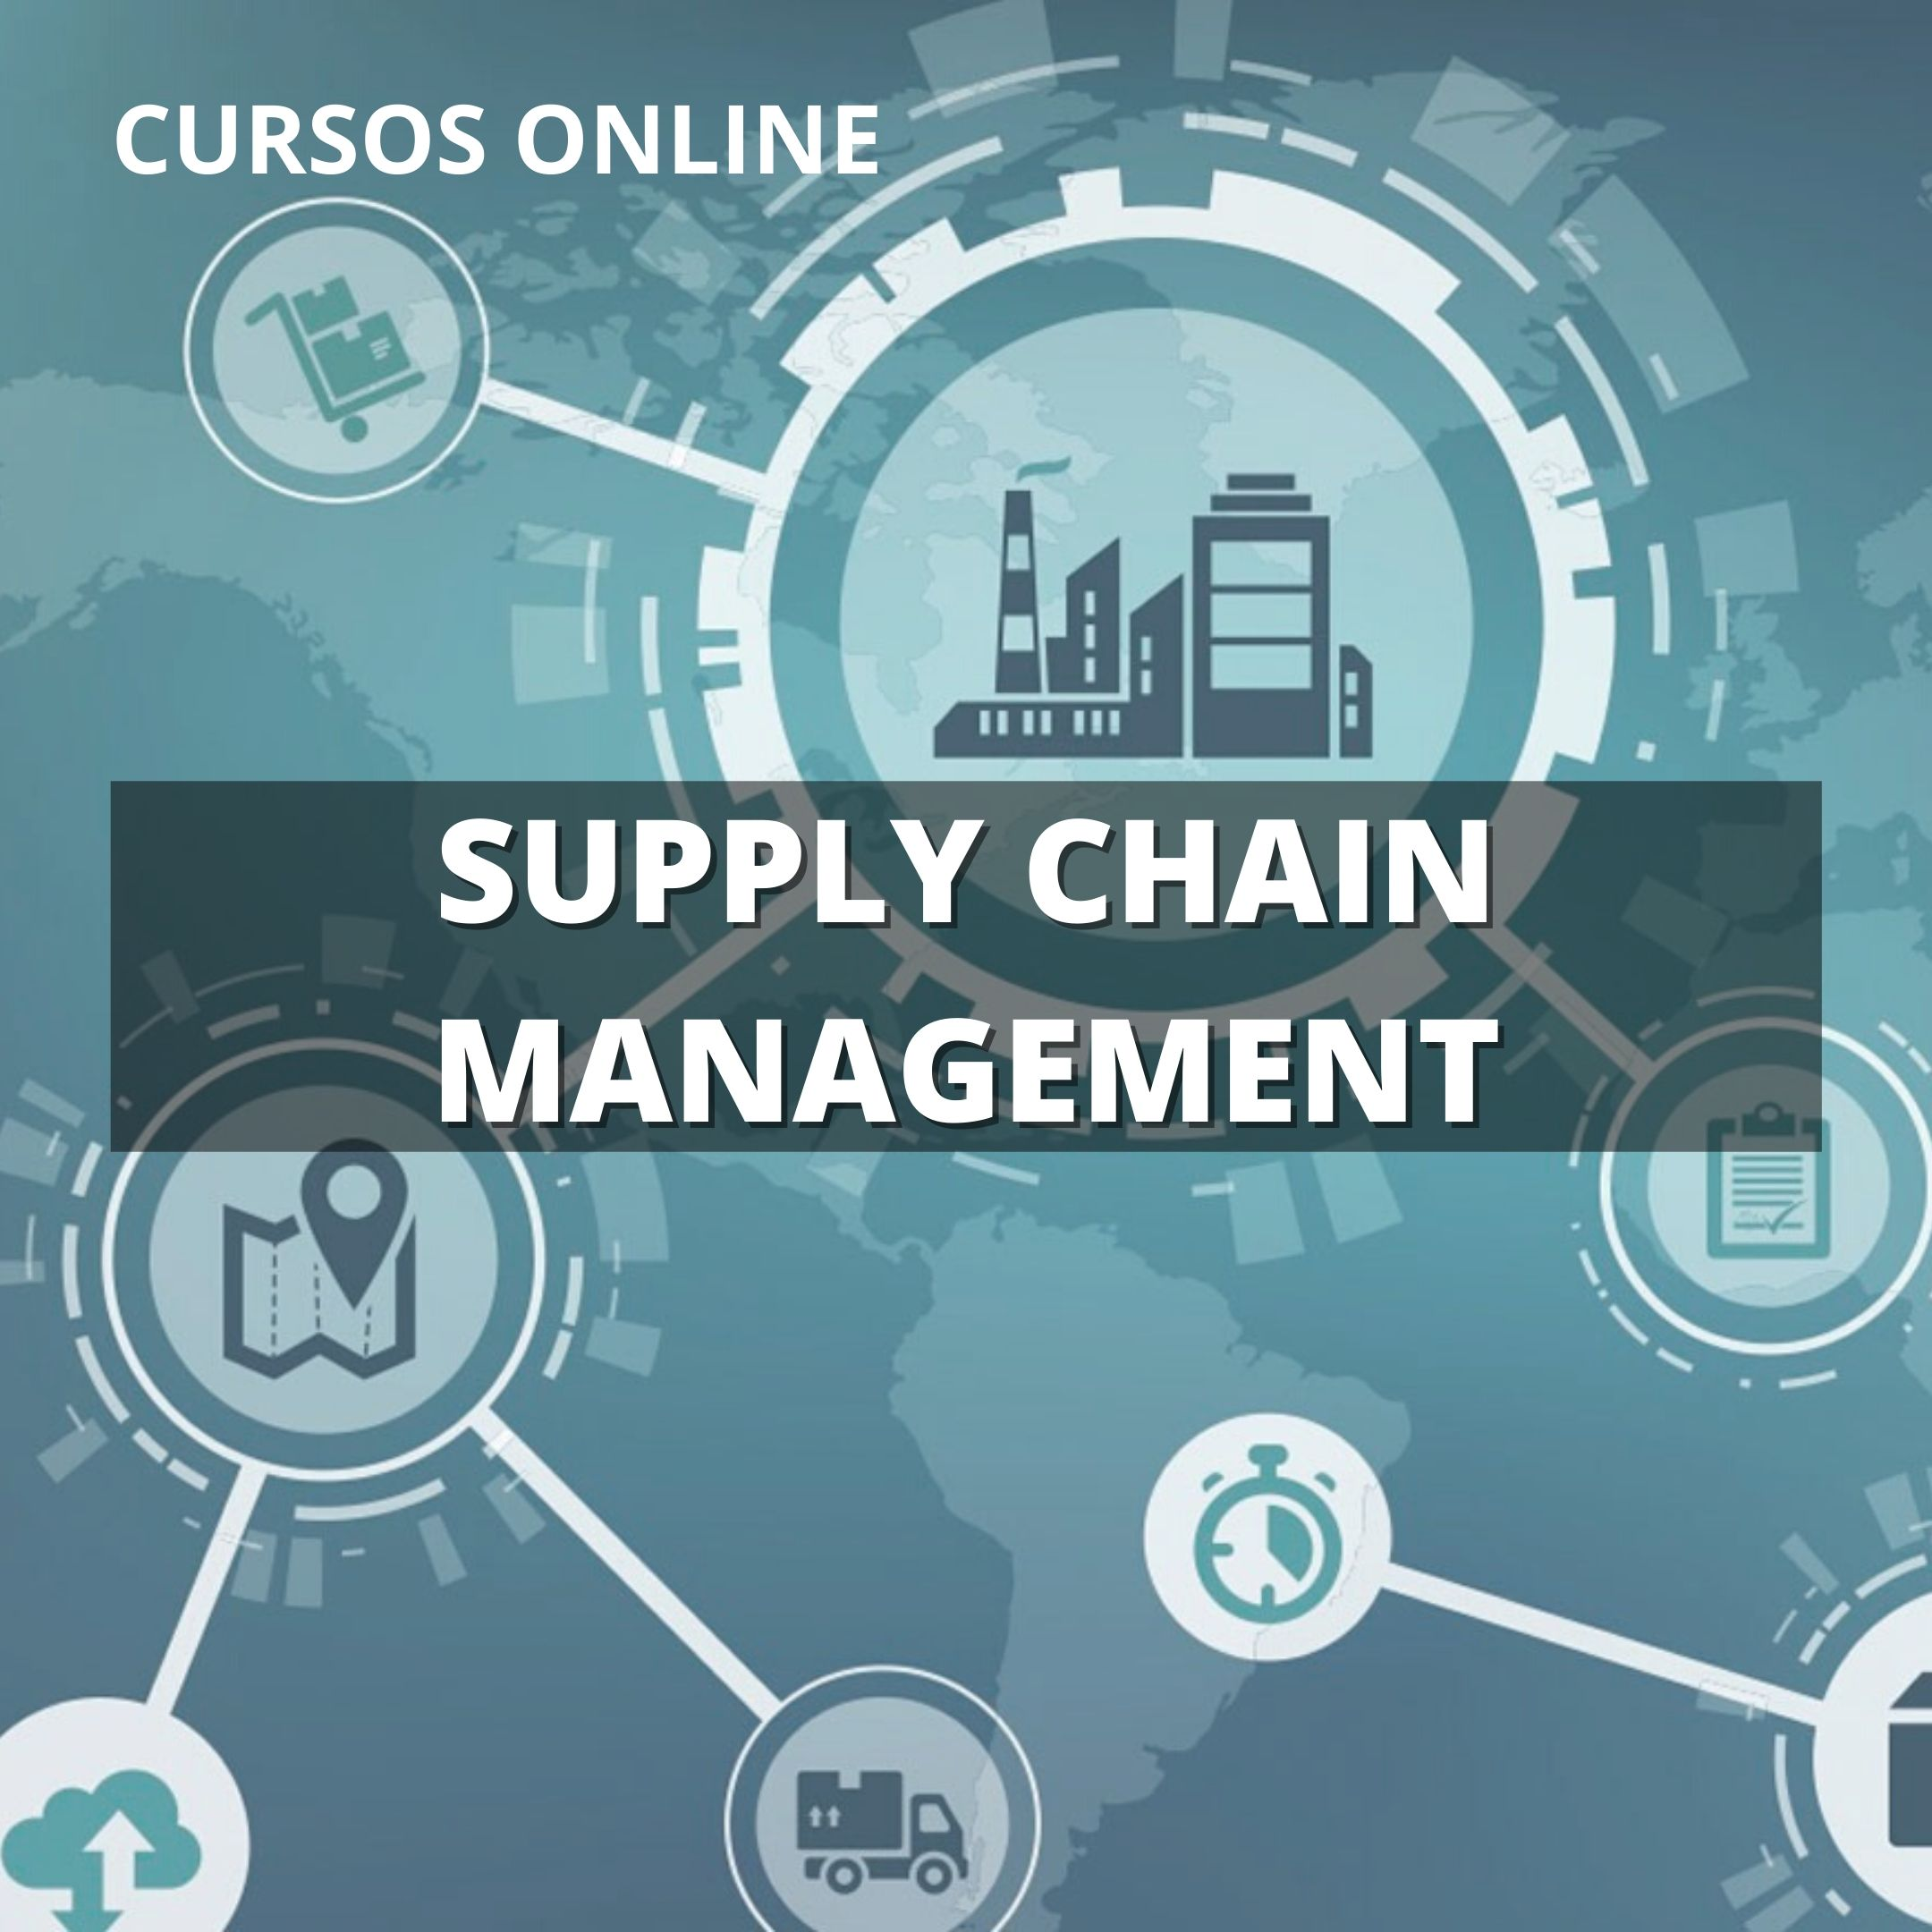 cursos online supply chain management